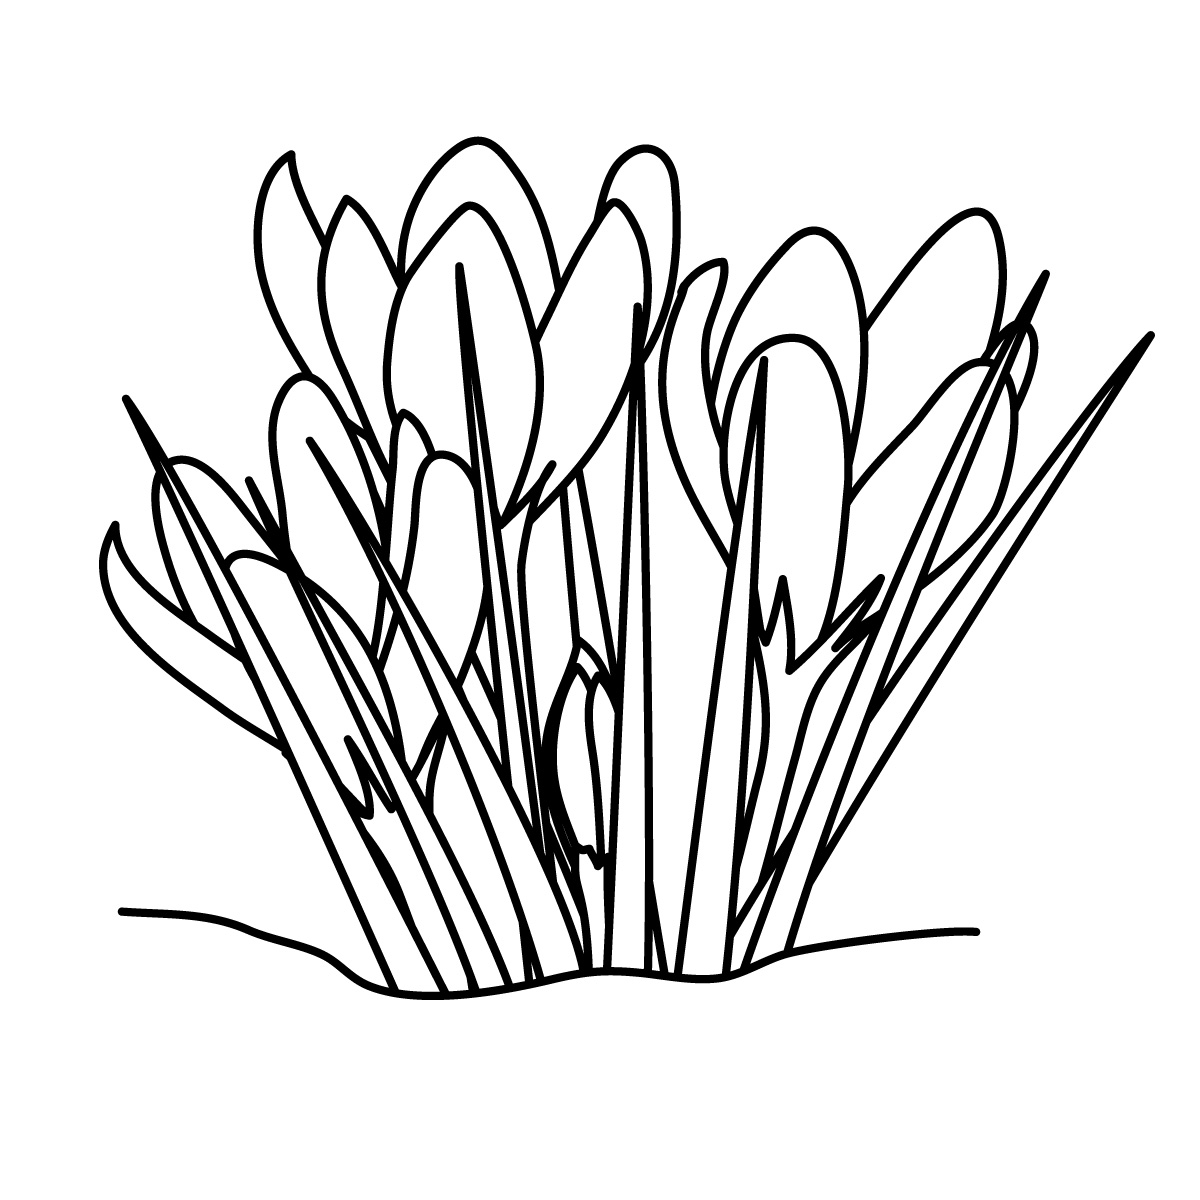 Daffodil clipart black and white.